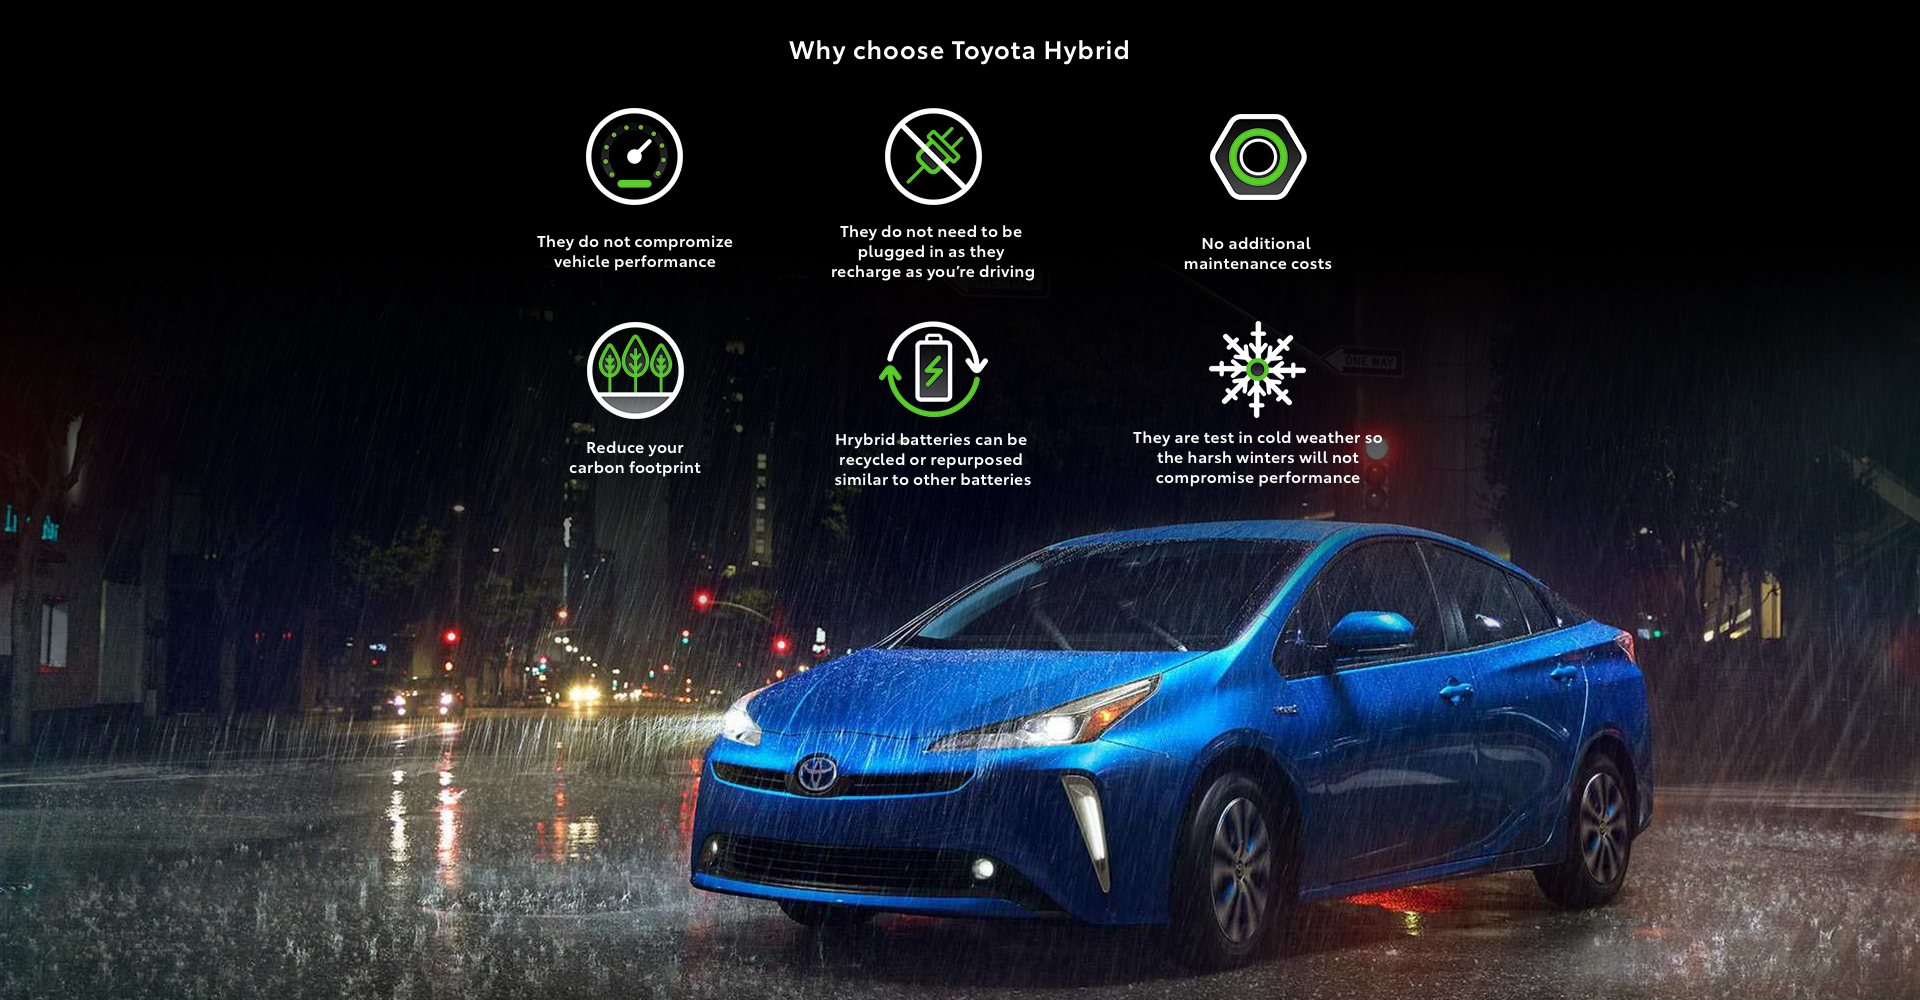 Why Choose Toyota Hybrids